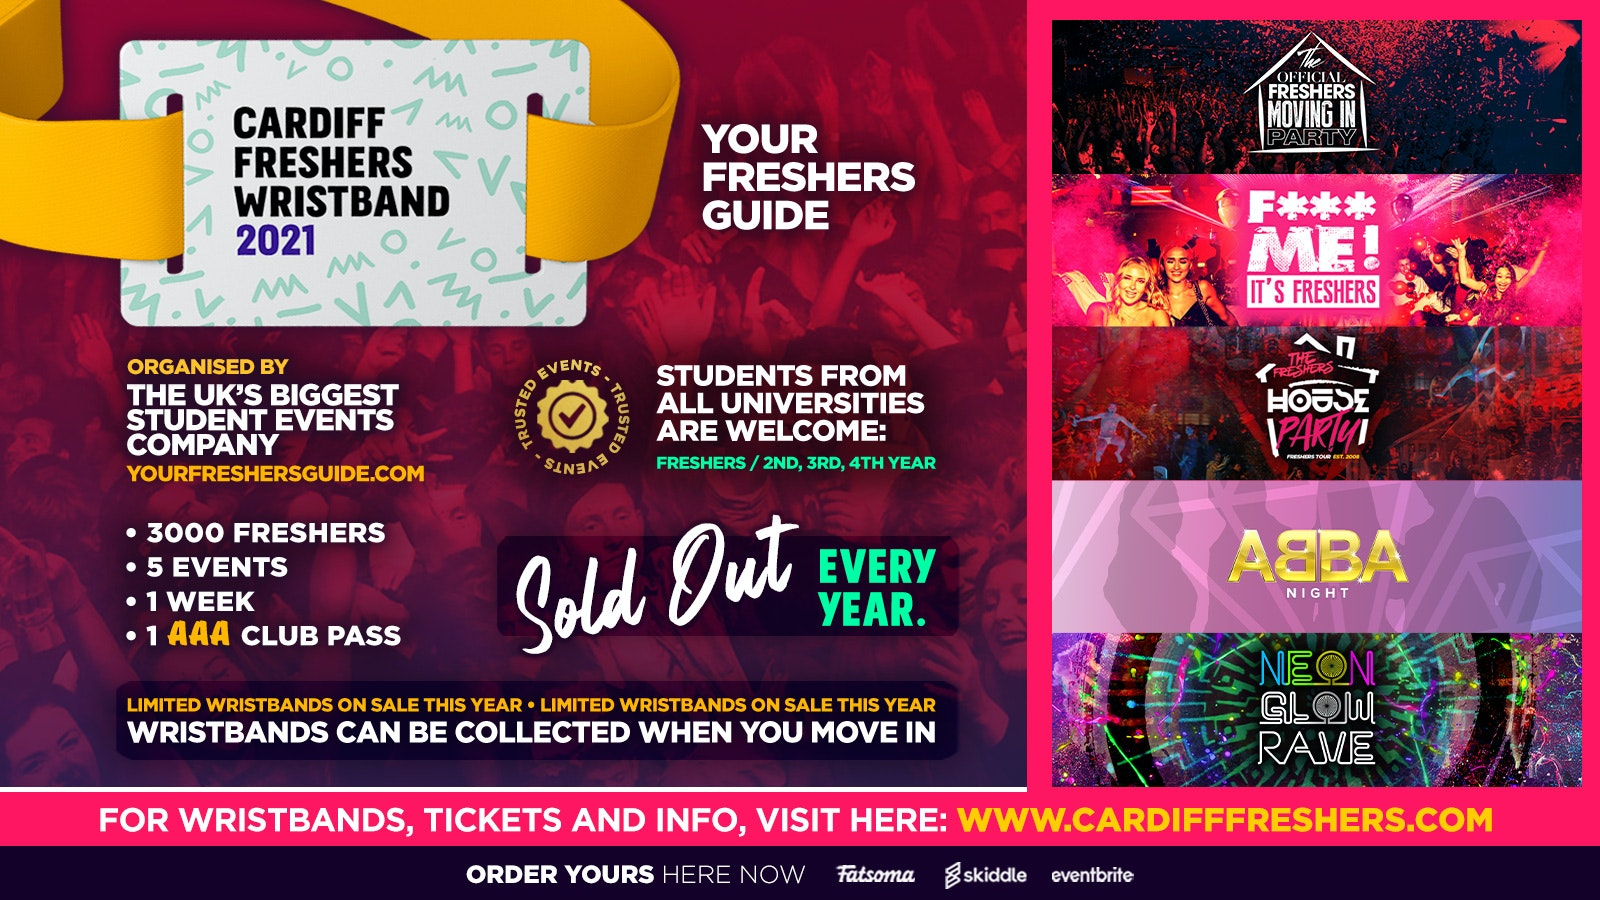 Cardiff Freshers Wristband 2021 – The Official Freshers Pass   Includes the biggest events in Cardiff